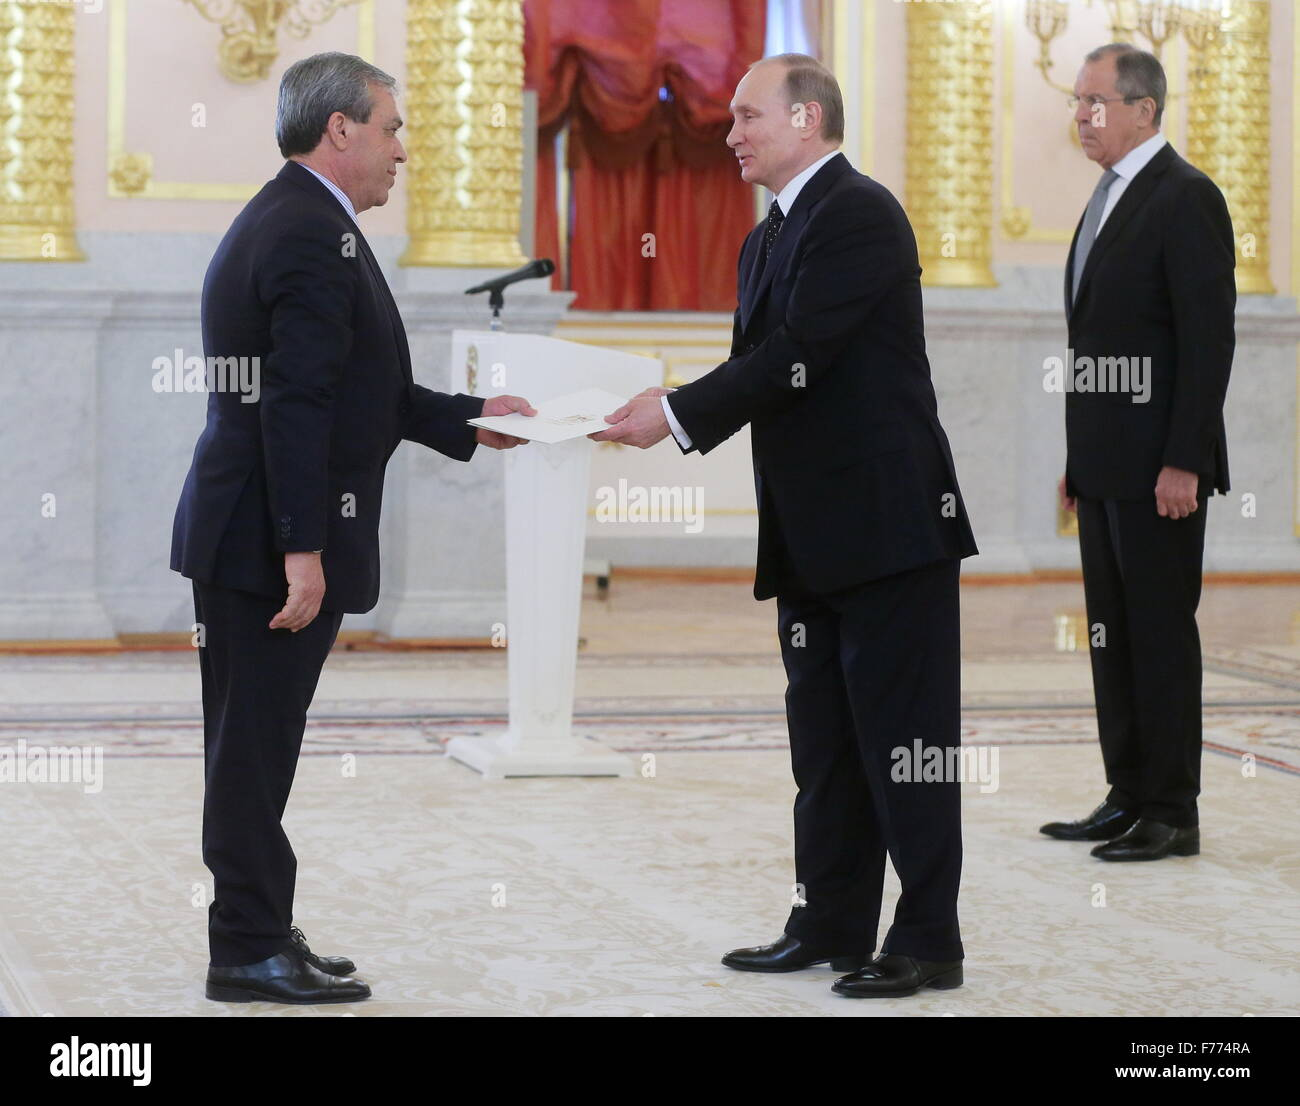 Moscow, Russia. 26th Nov, 2015. Russia's president Vladimir Putin (C) receives the credentials from Palestine'sStock Photo